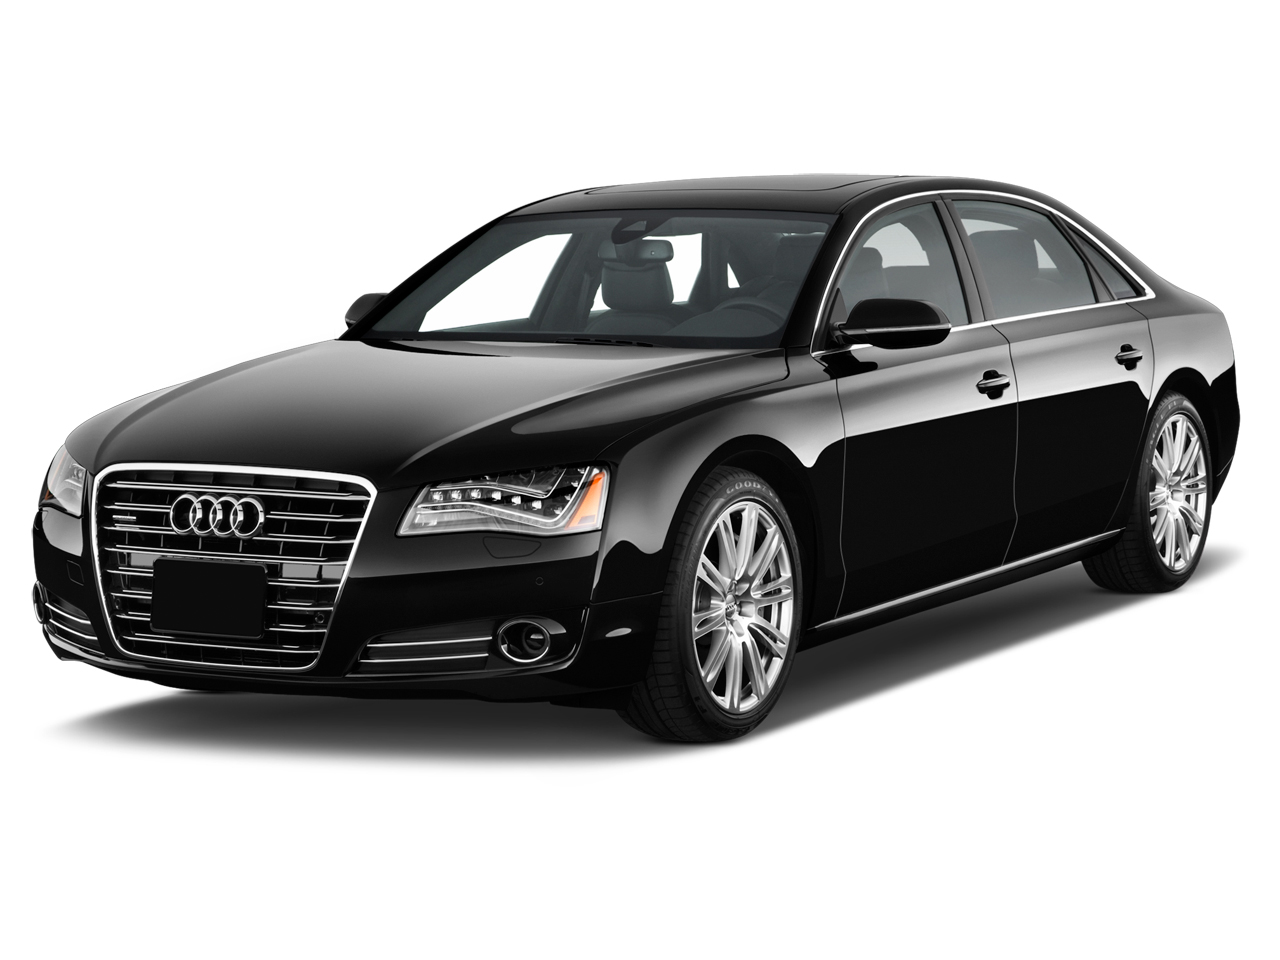 2002 Audi A8 L Review Ratings Specs Prices And Photos